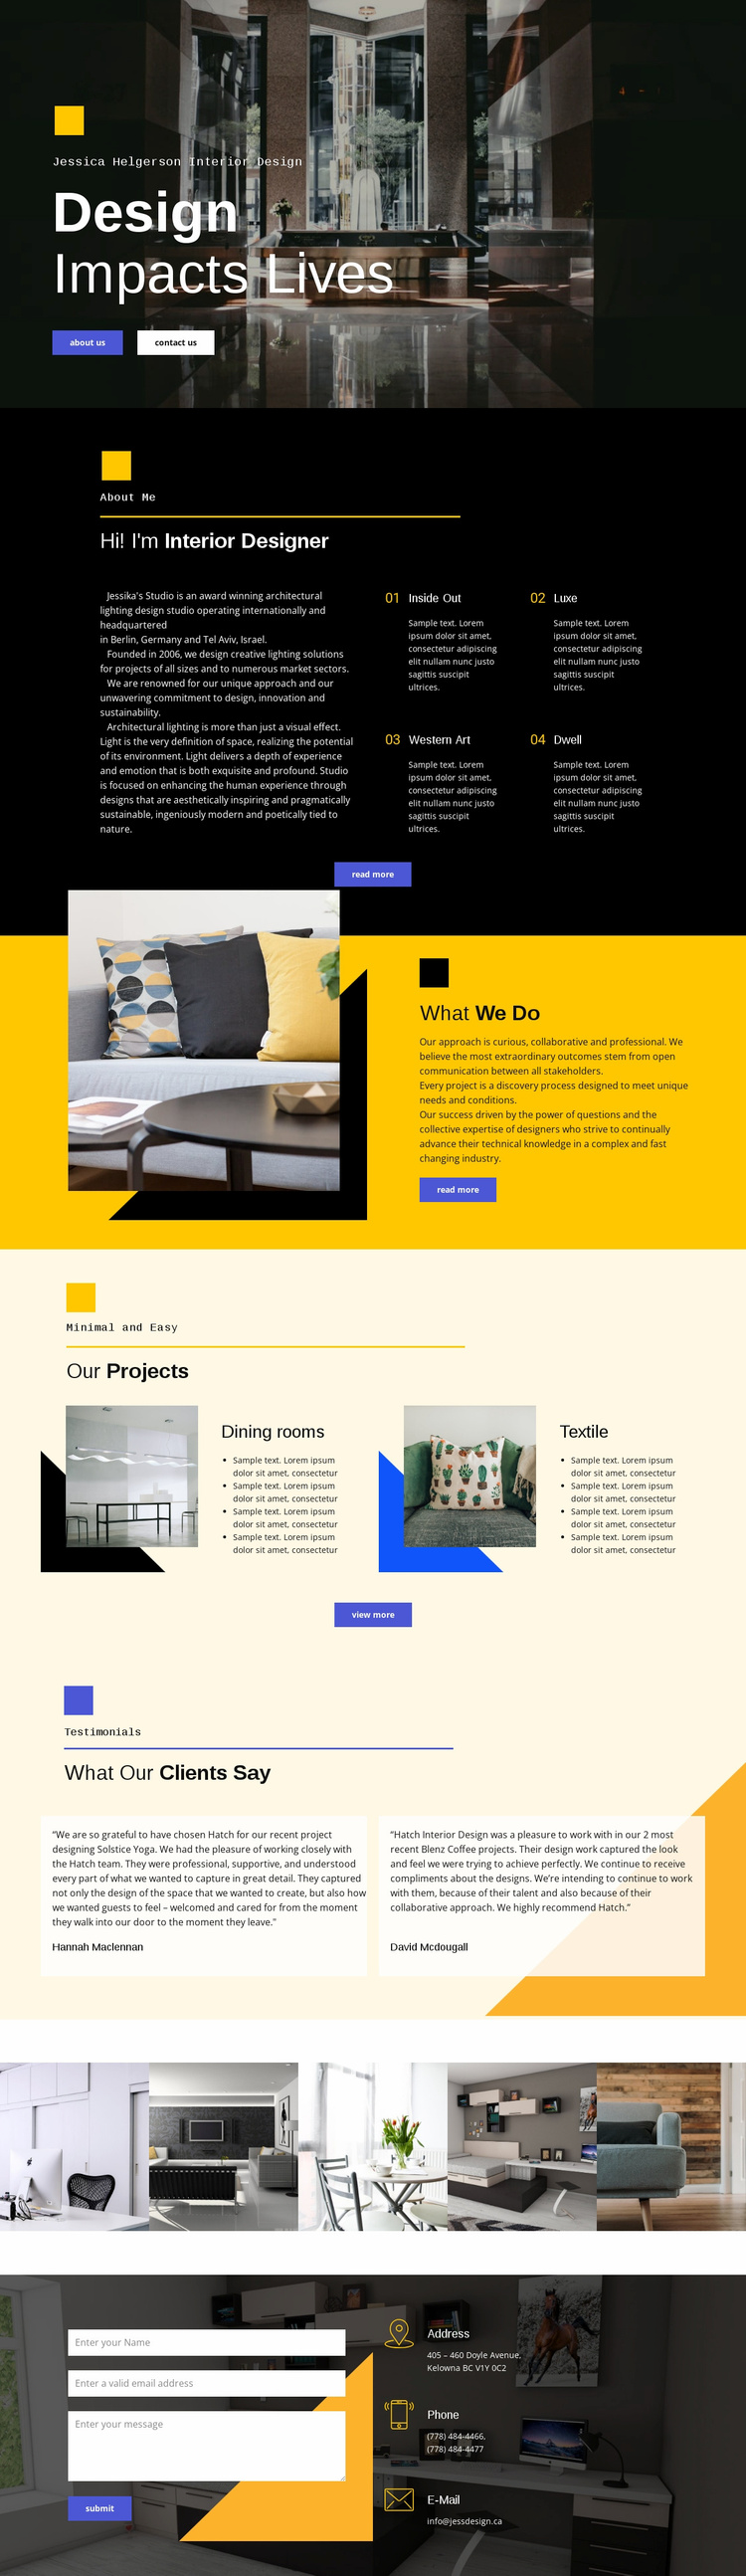 Design affects life Landing Page